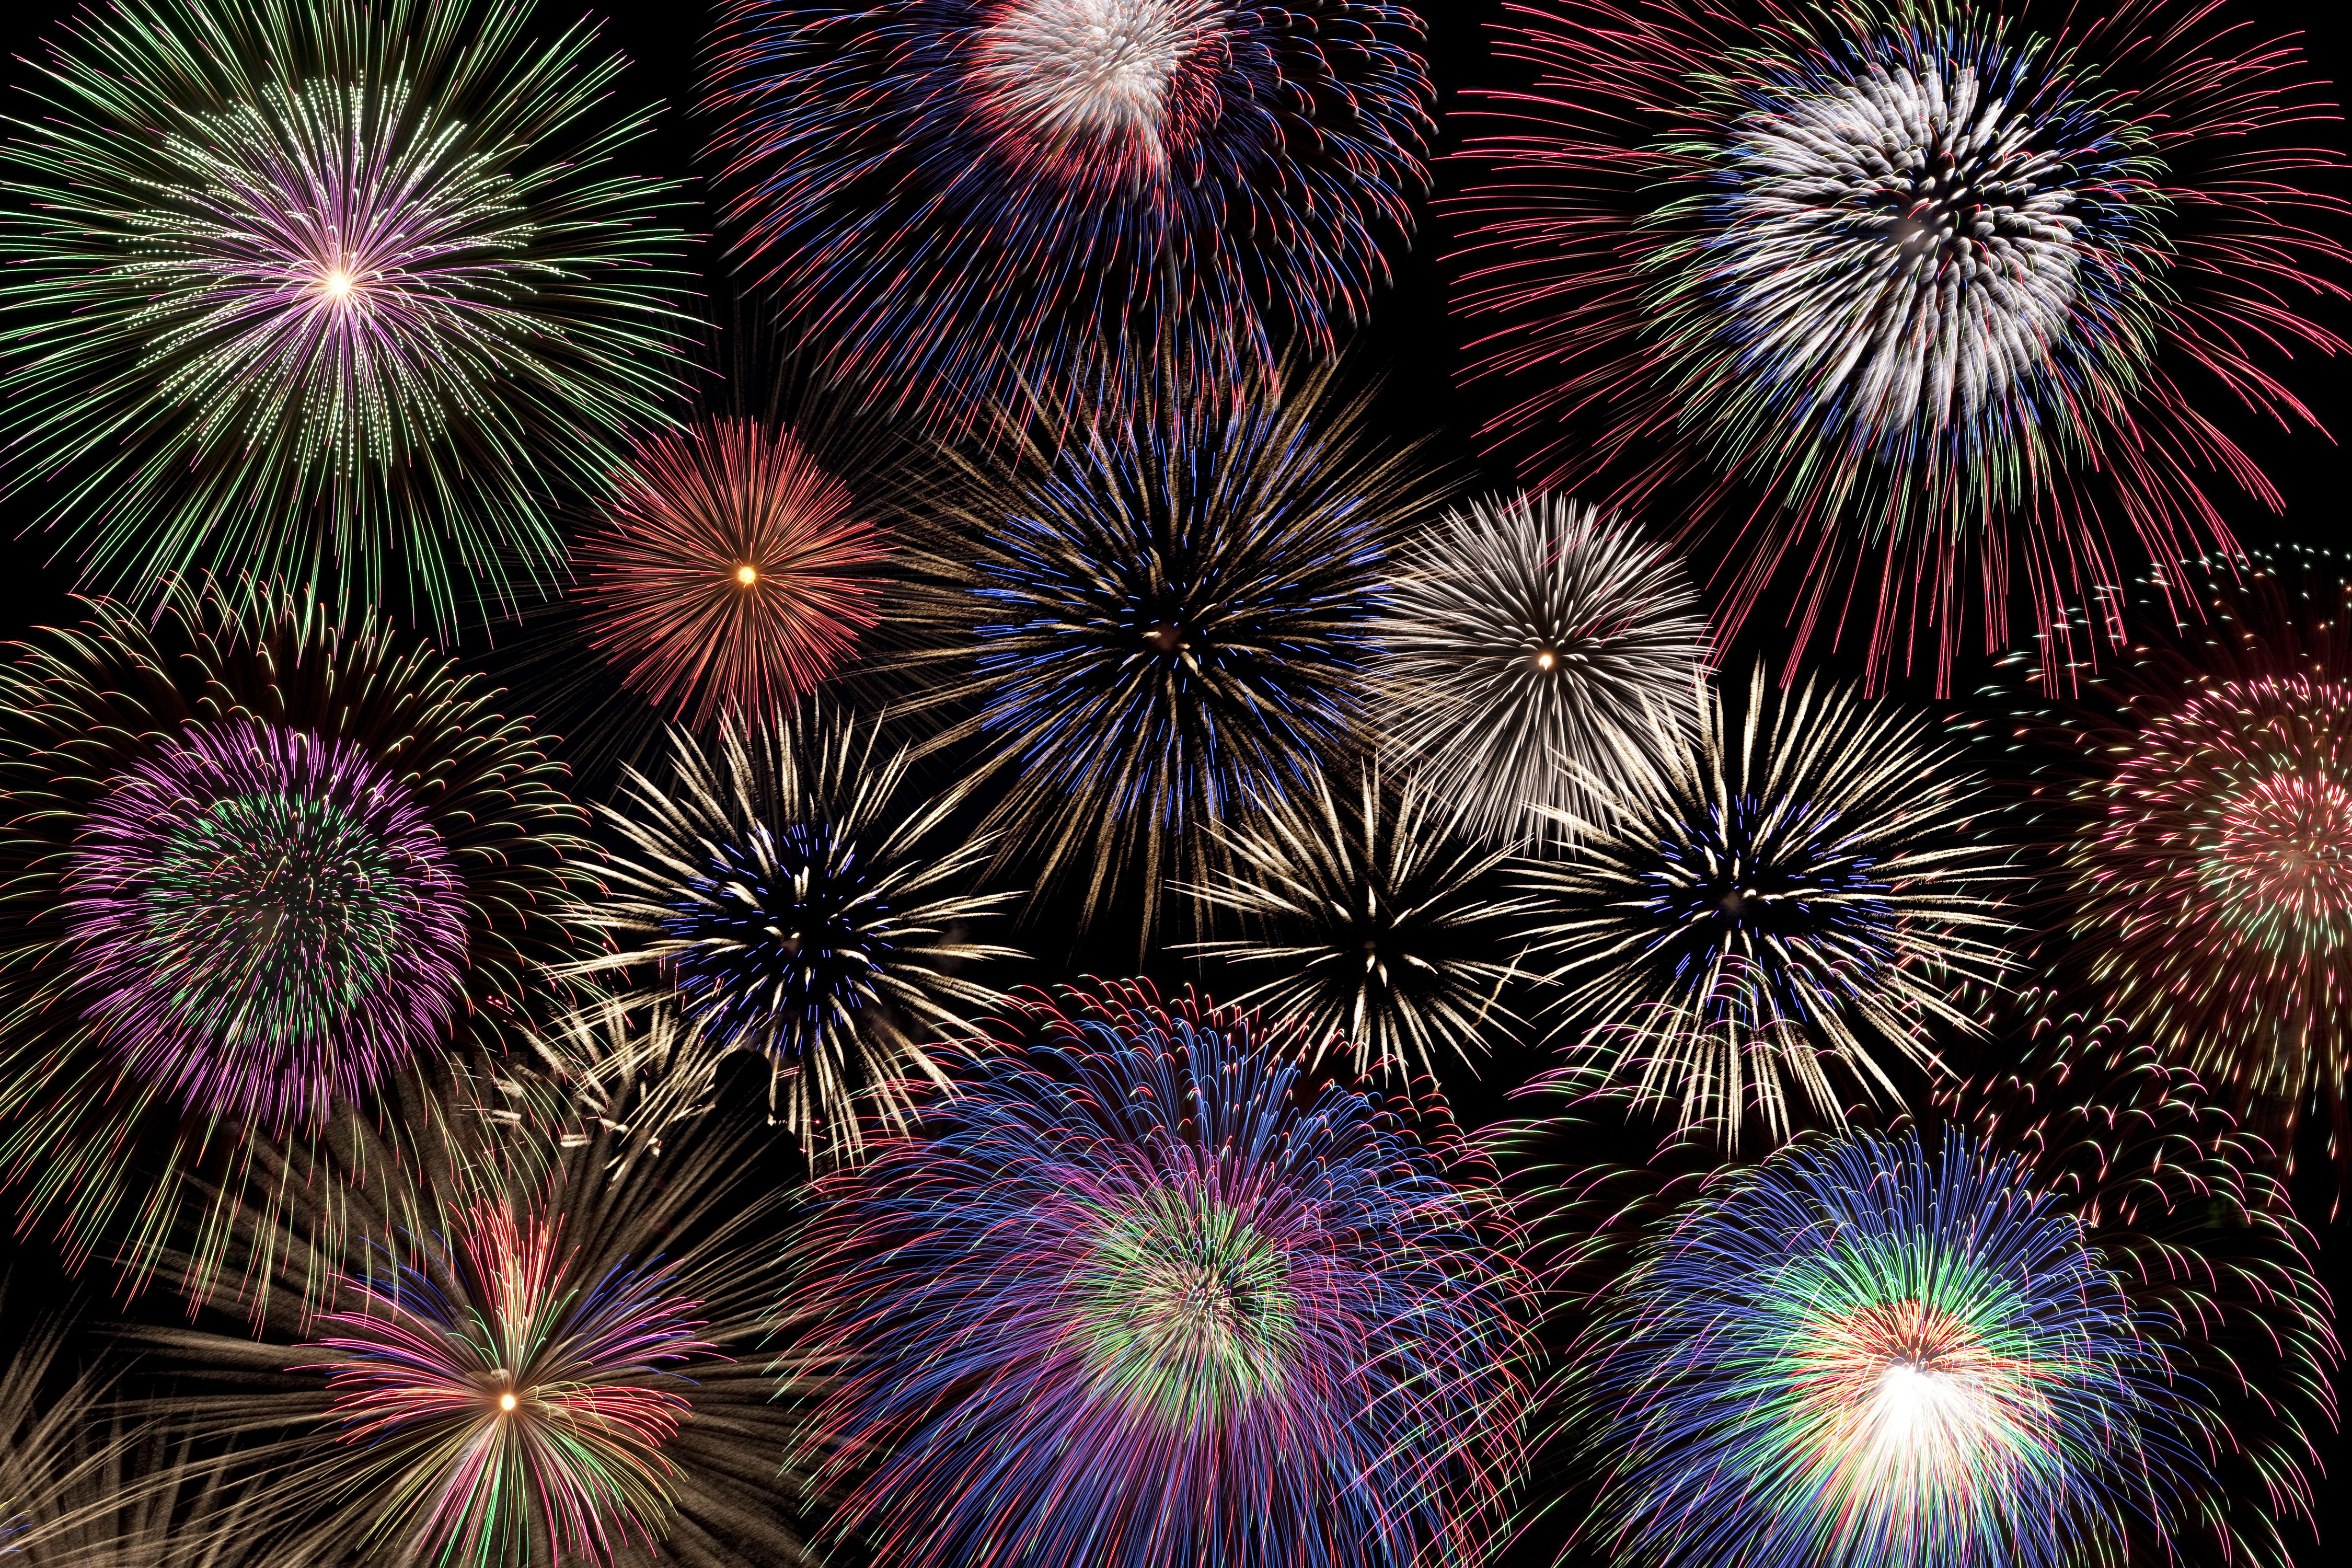 Best Places To Watch the 4th of July Fireworks Around the South